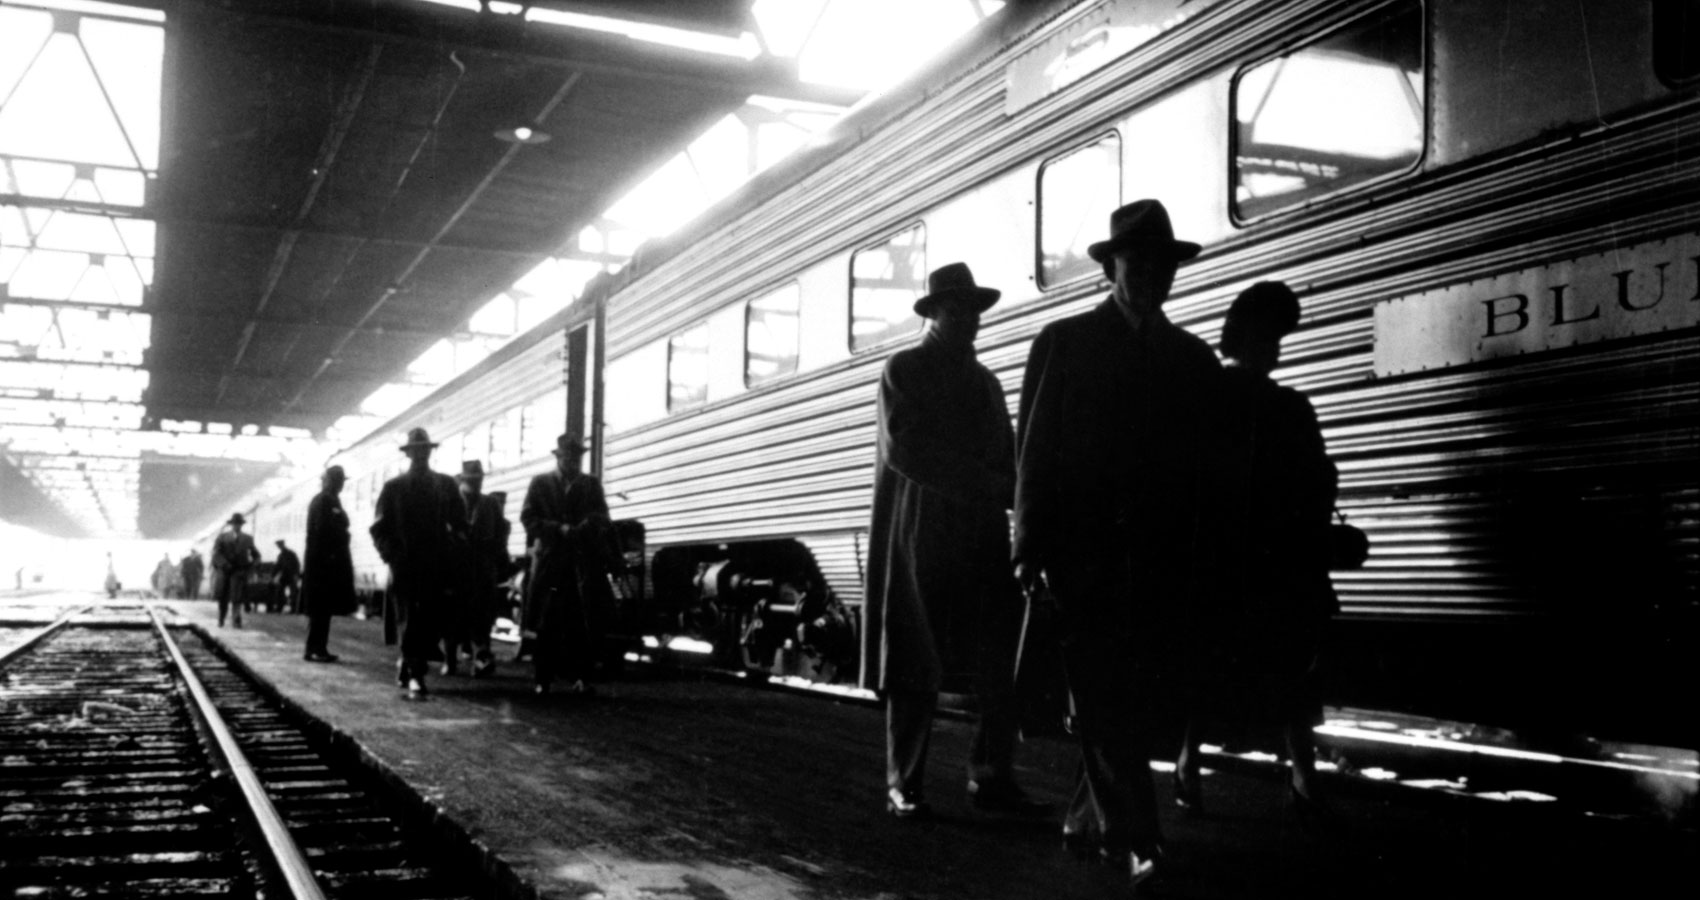 The Man on the Train by Elaine E. Degro at Spillwords.com